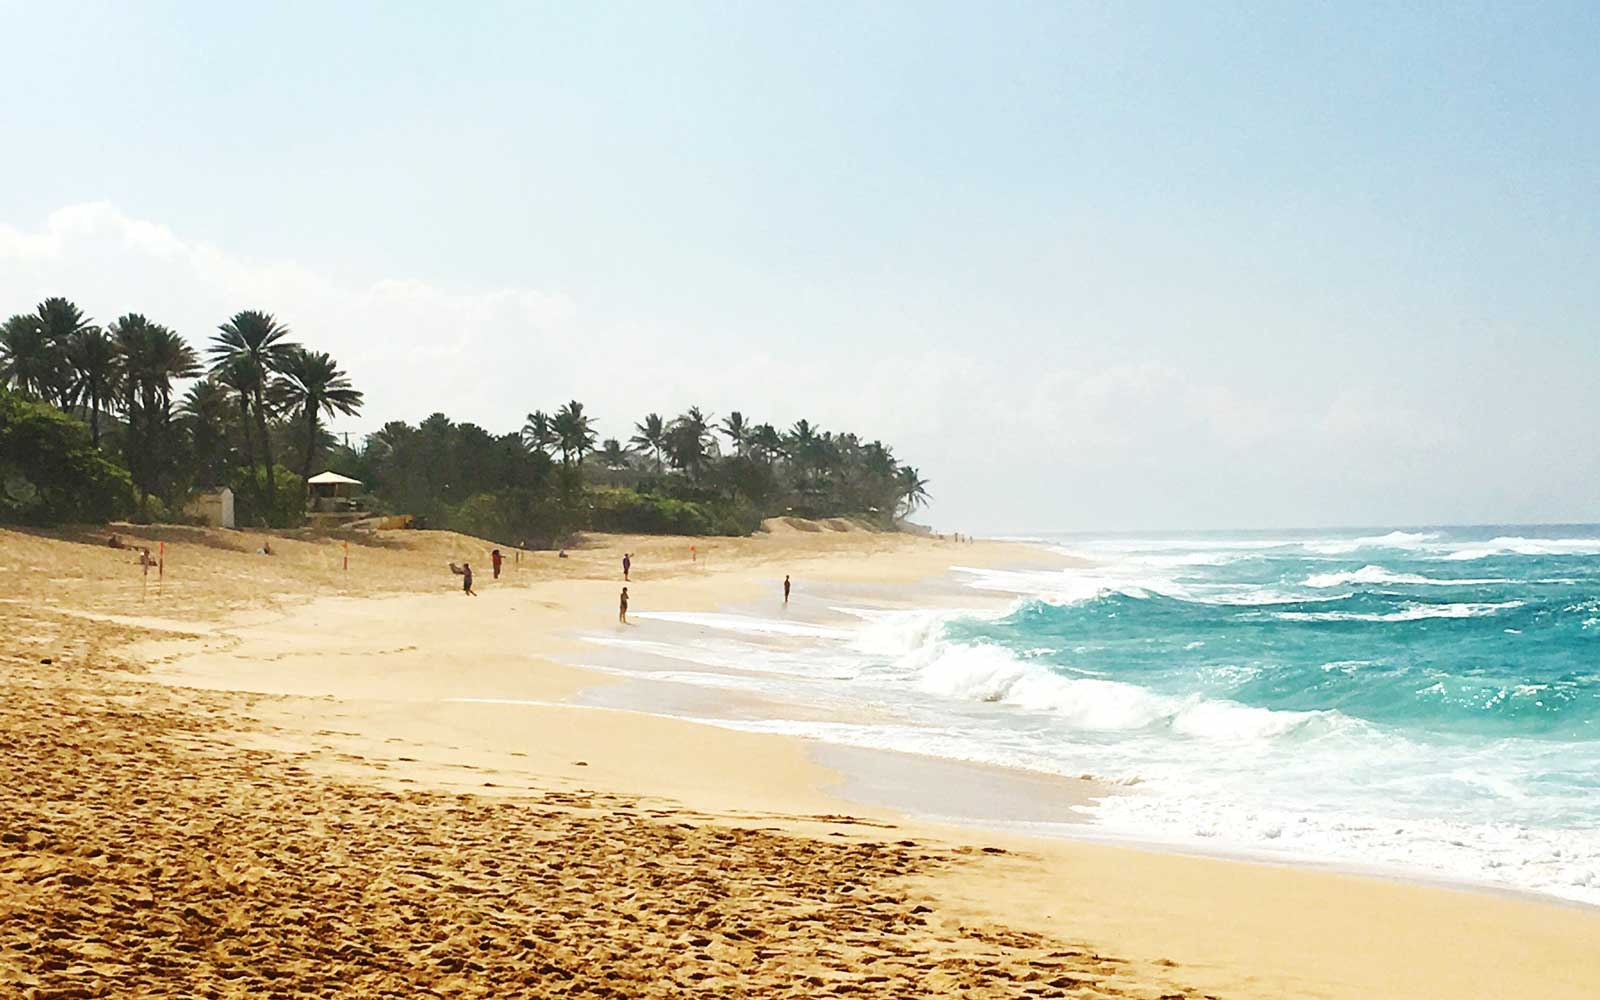 Beach at Haleiwa, Hawaii